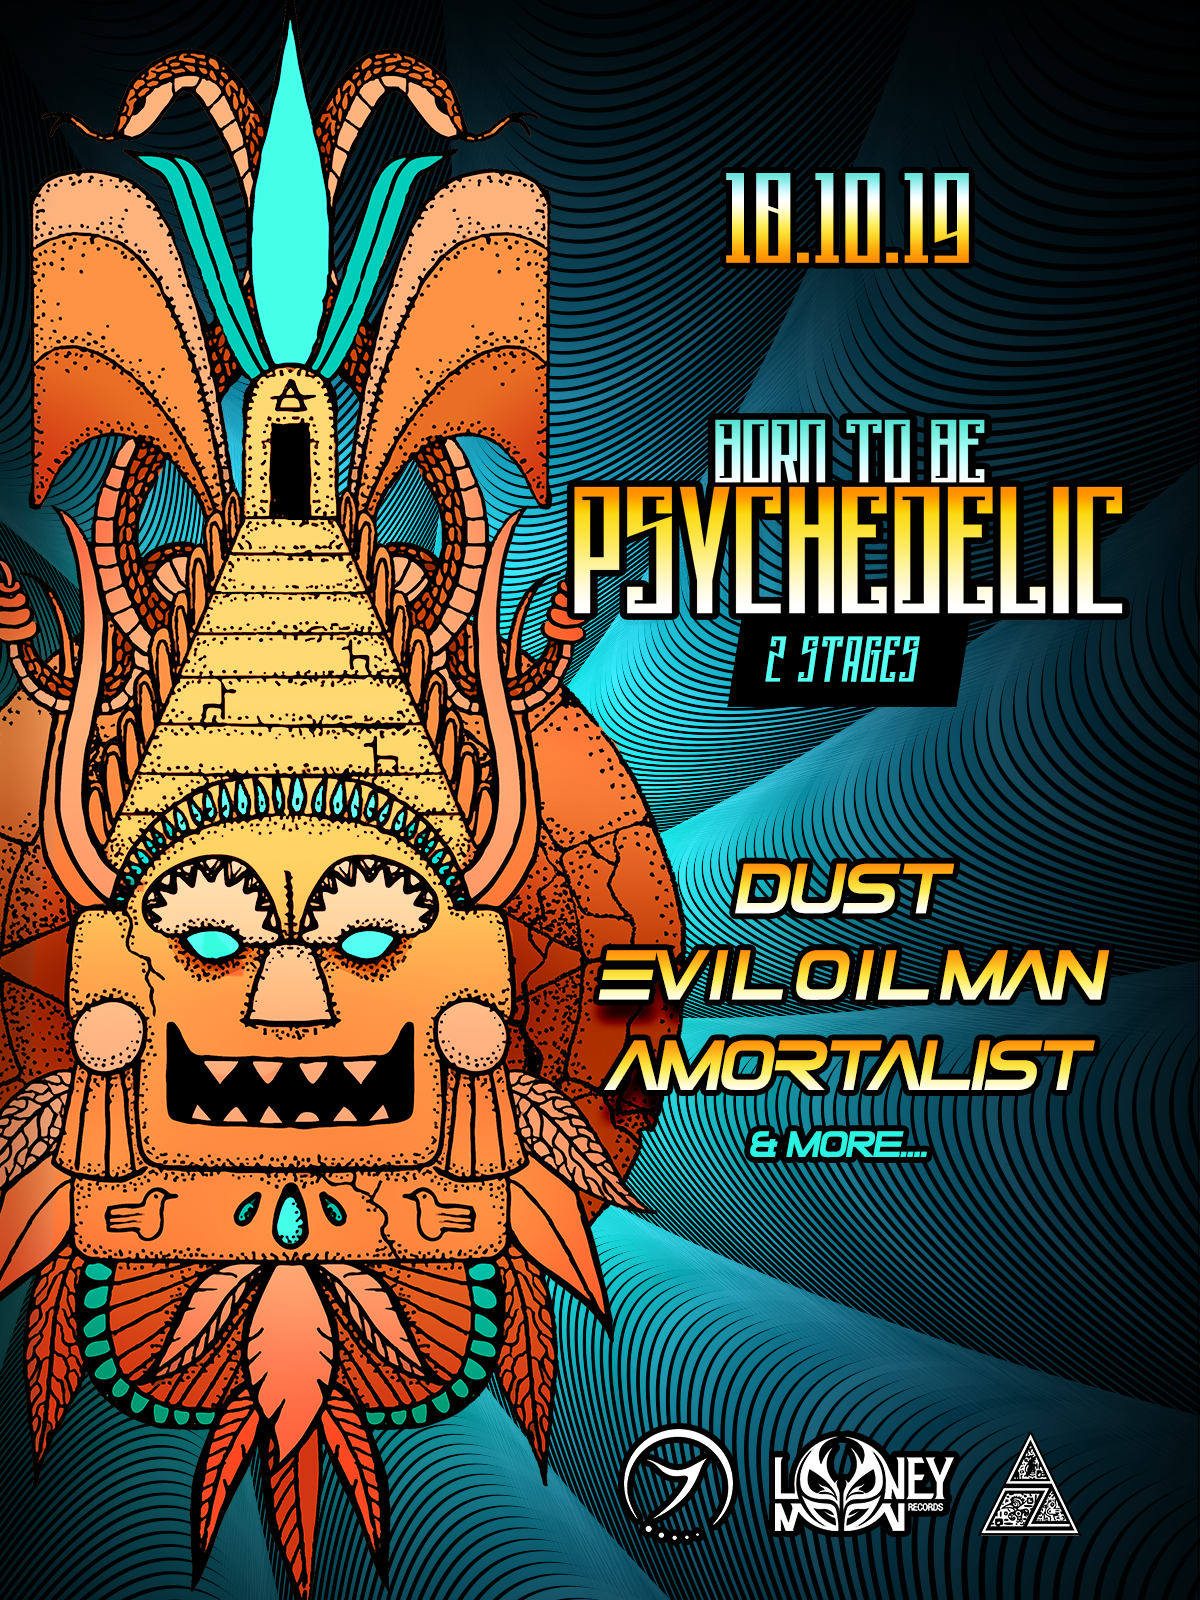 ❂Born to be Psychedelic /3 Stages ❂ Dust, Evil Oil Man &more..❂